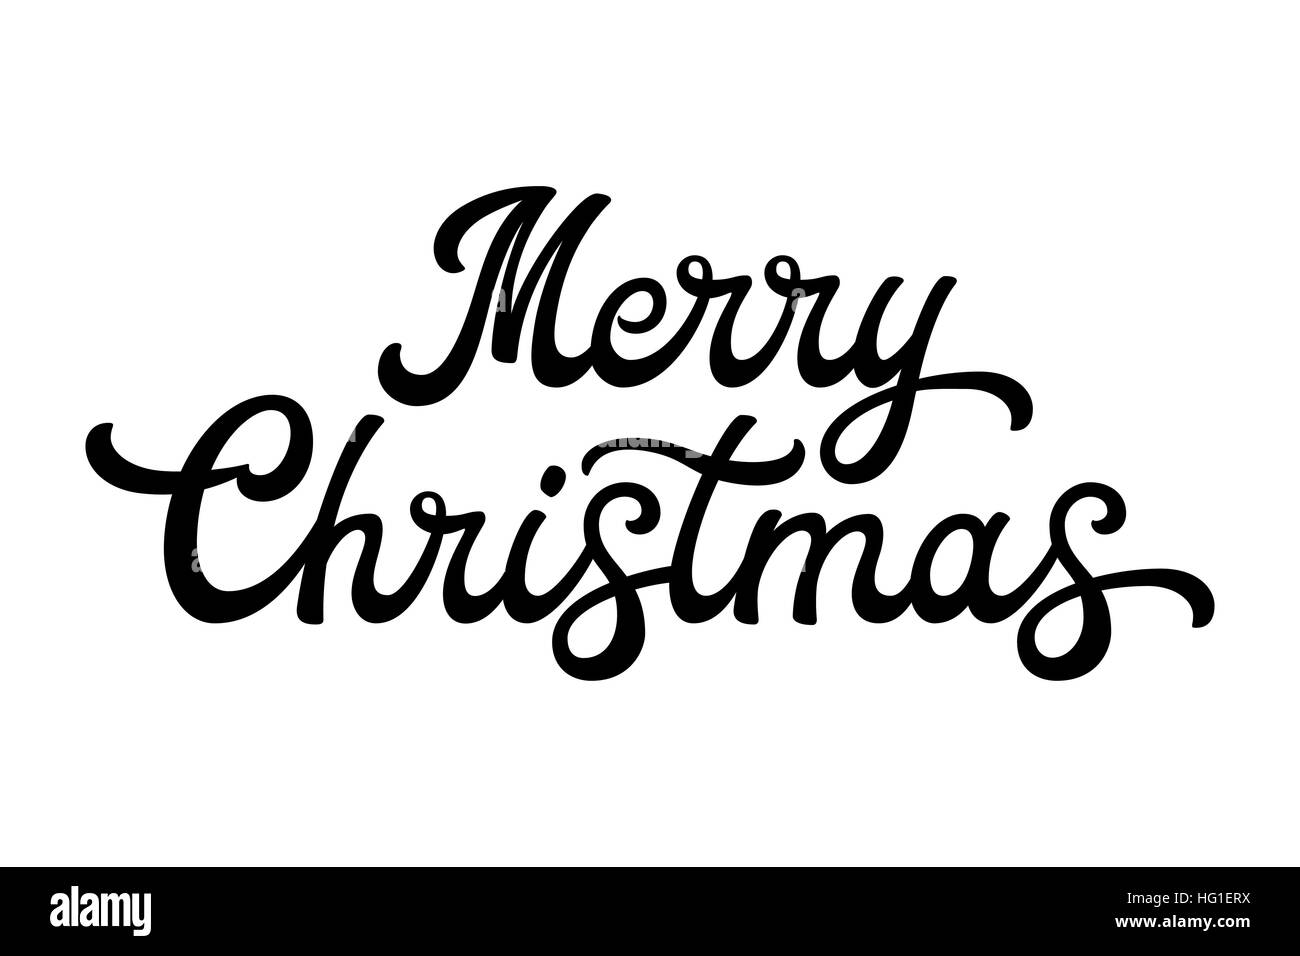 Merry Christmas Brush Lettering Black Letters Isolated On White Background Decoration For Greeting